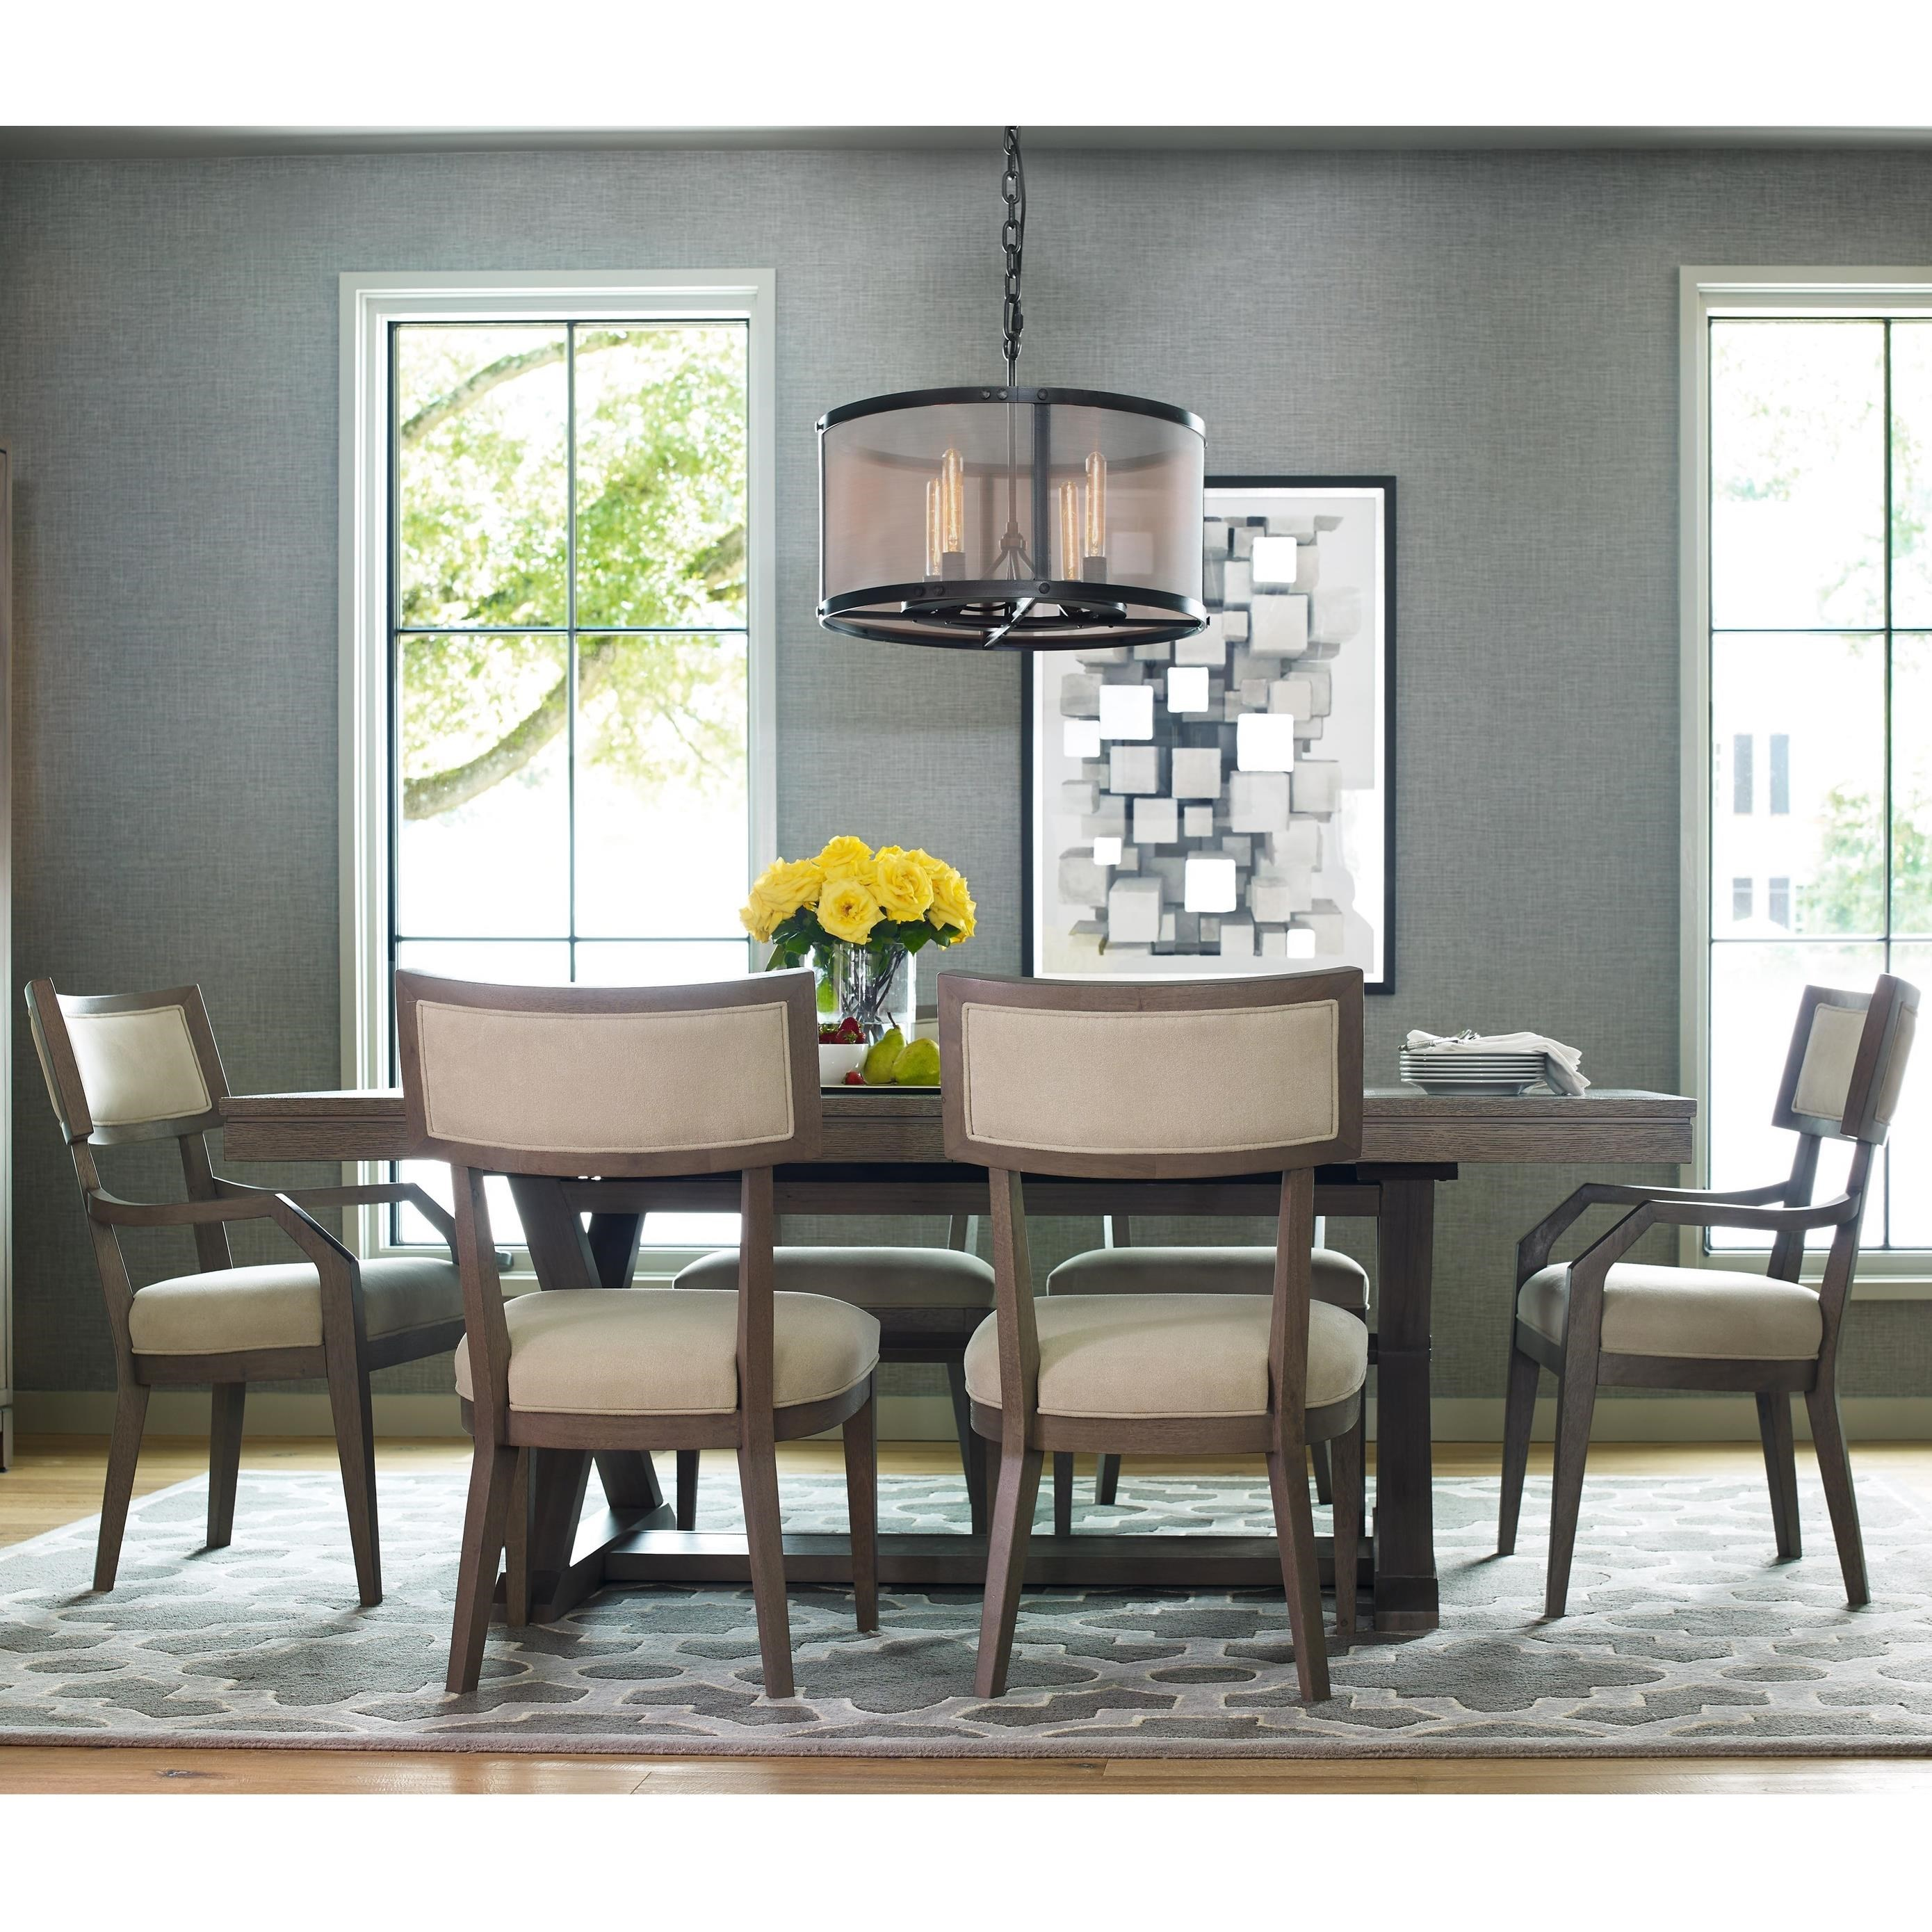 rachael ray home highline 7 piece dining set with trestle table belfort furniture dining 7 or more piece sets